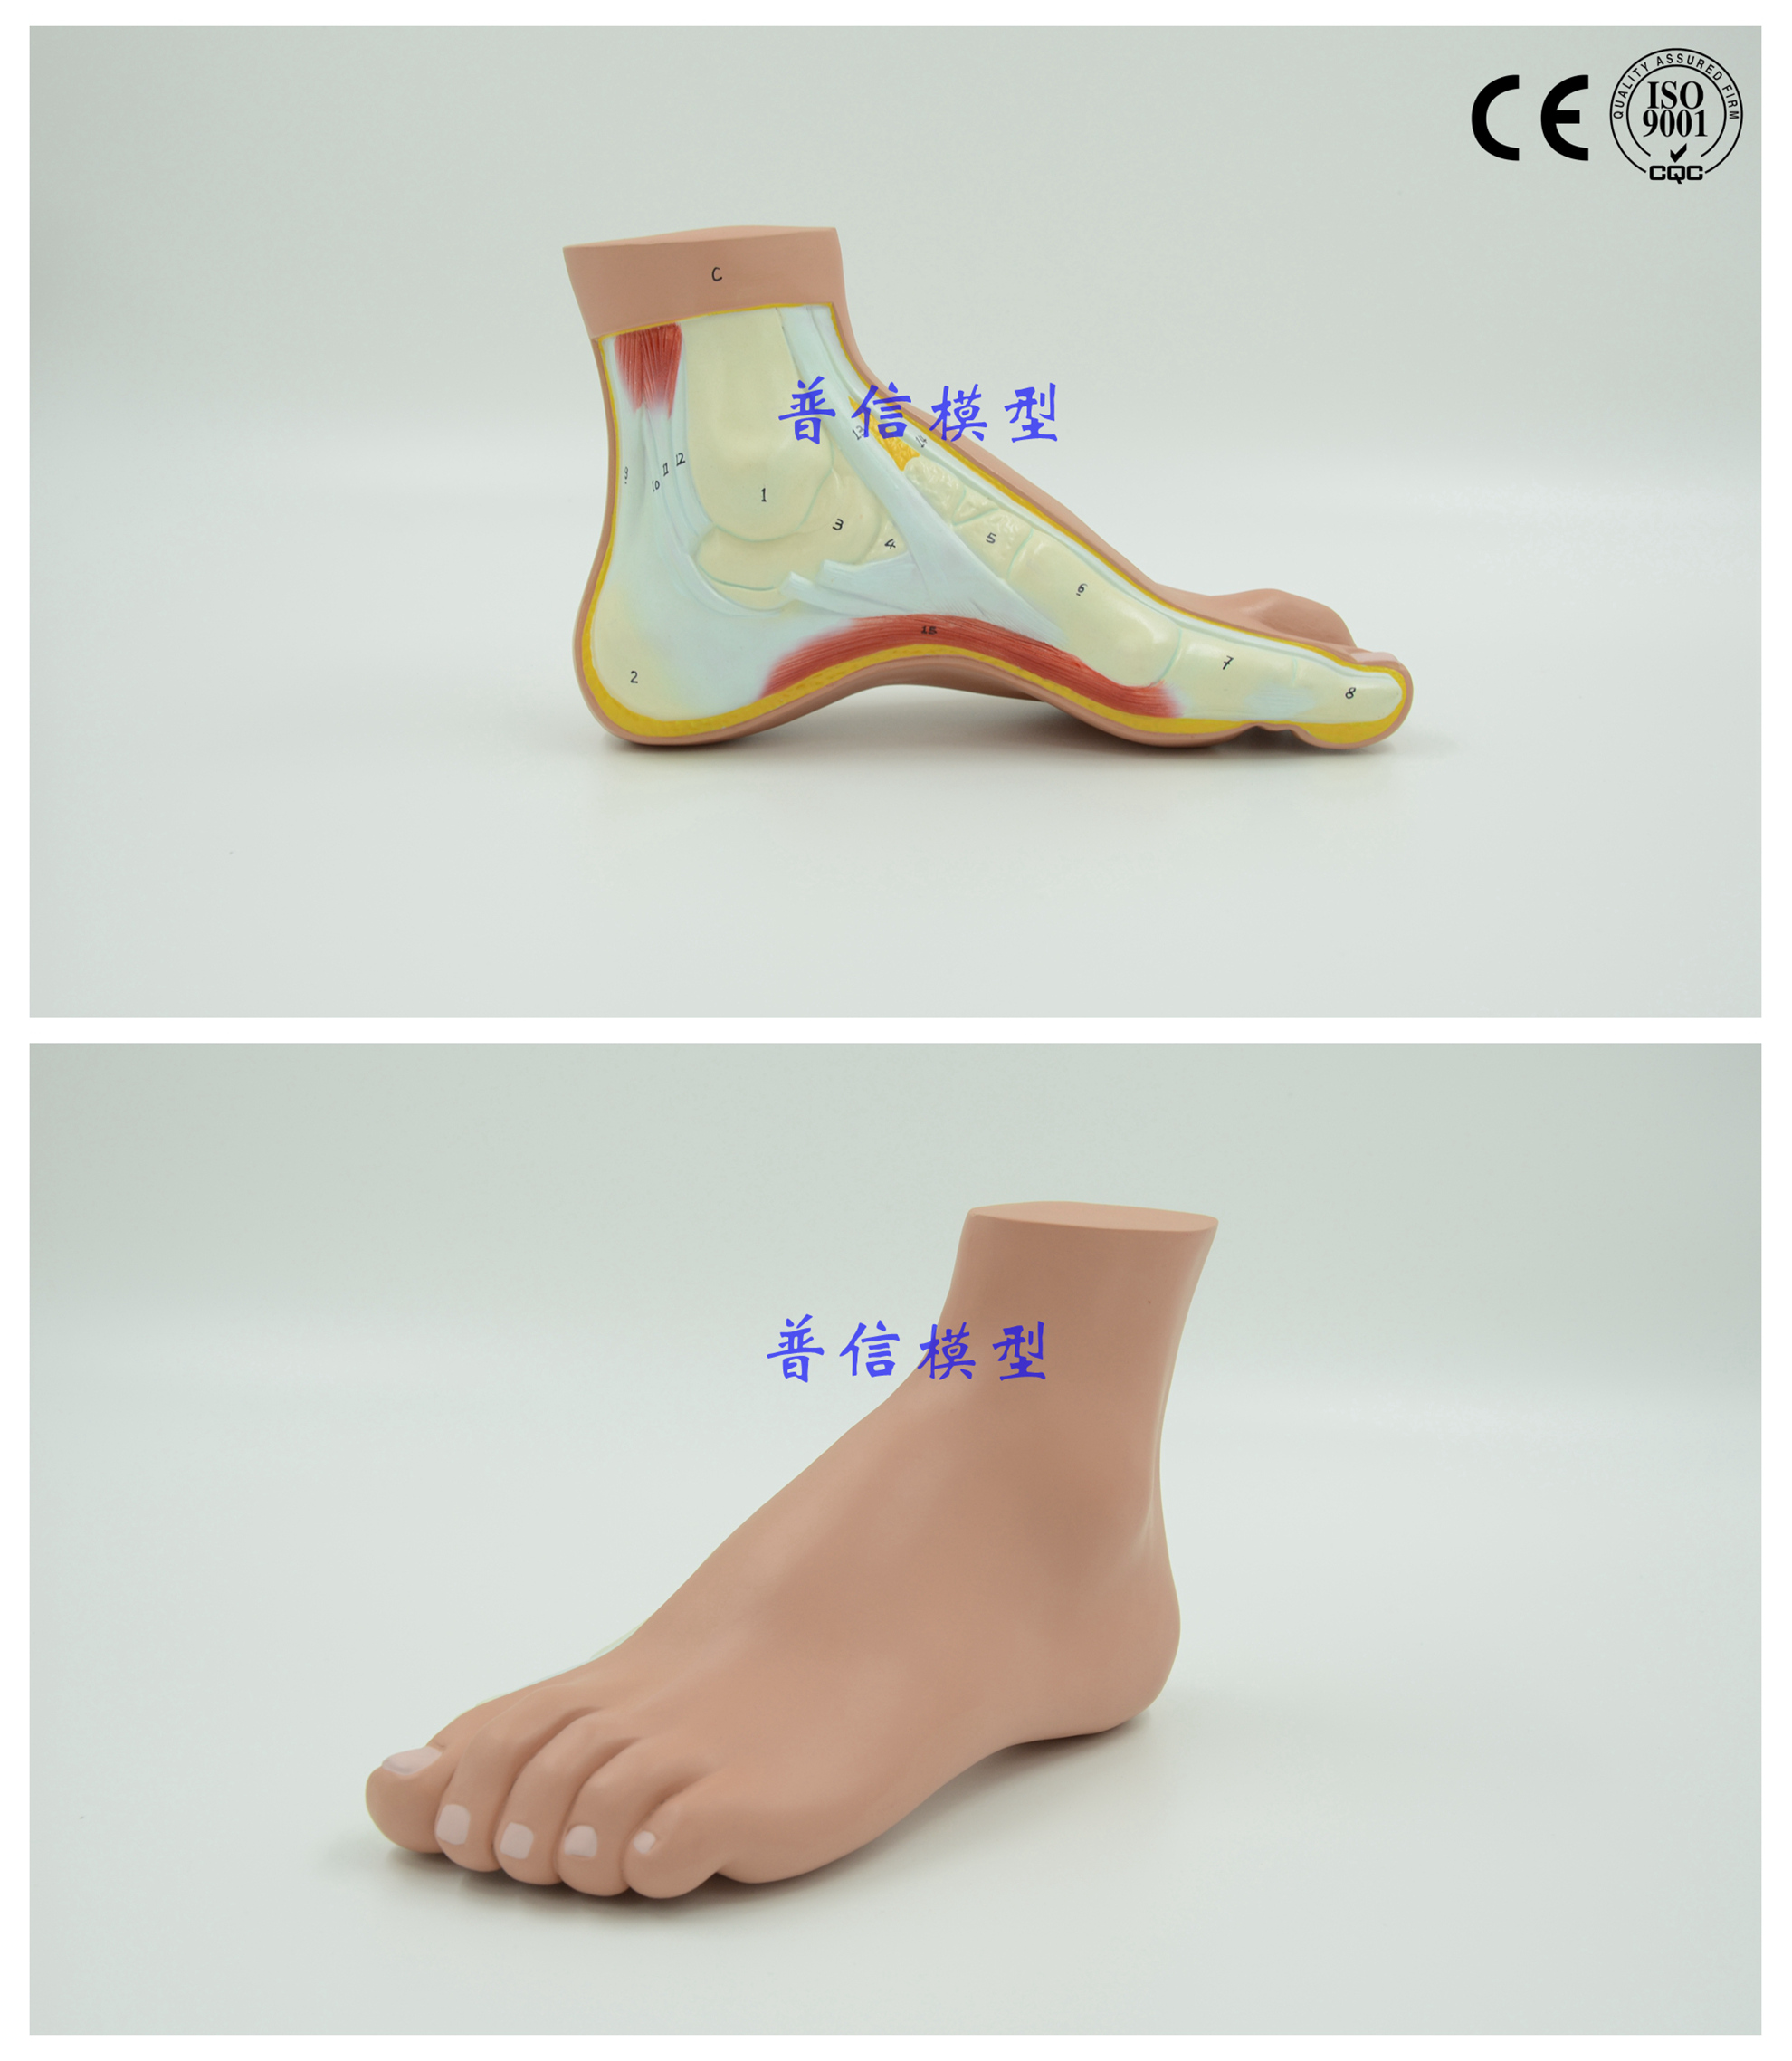 Buy Foot Anatomy Arch And Get Free Shipping On Aliexpress